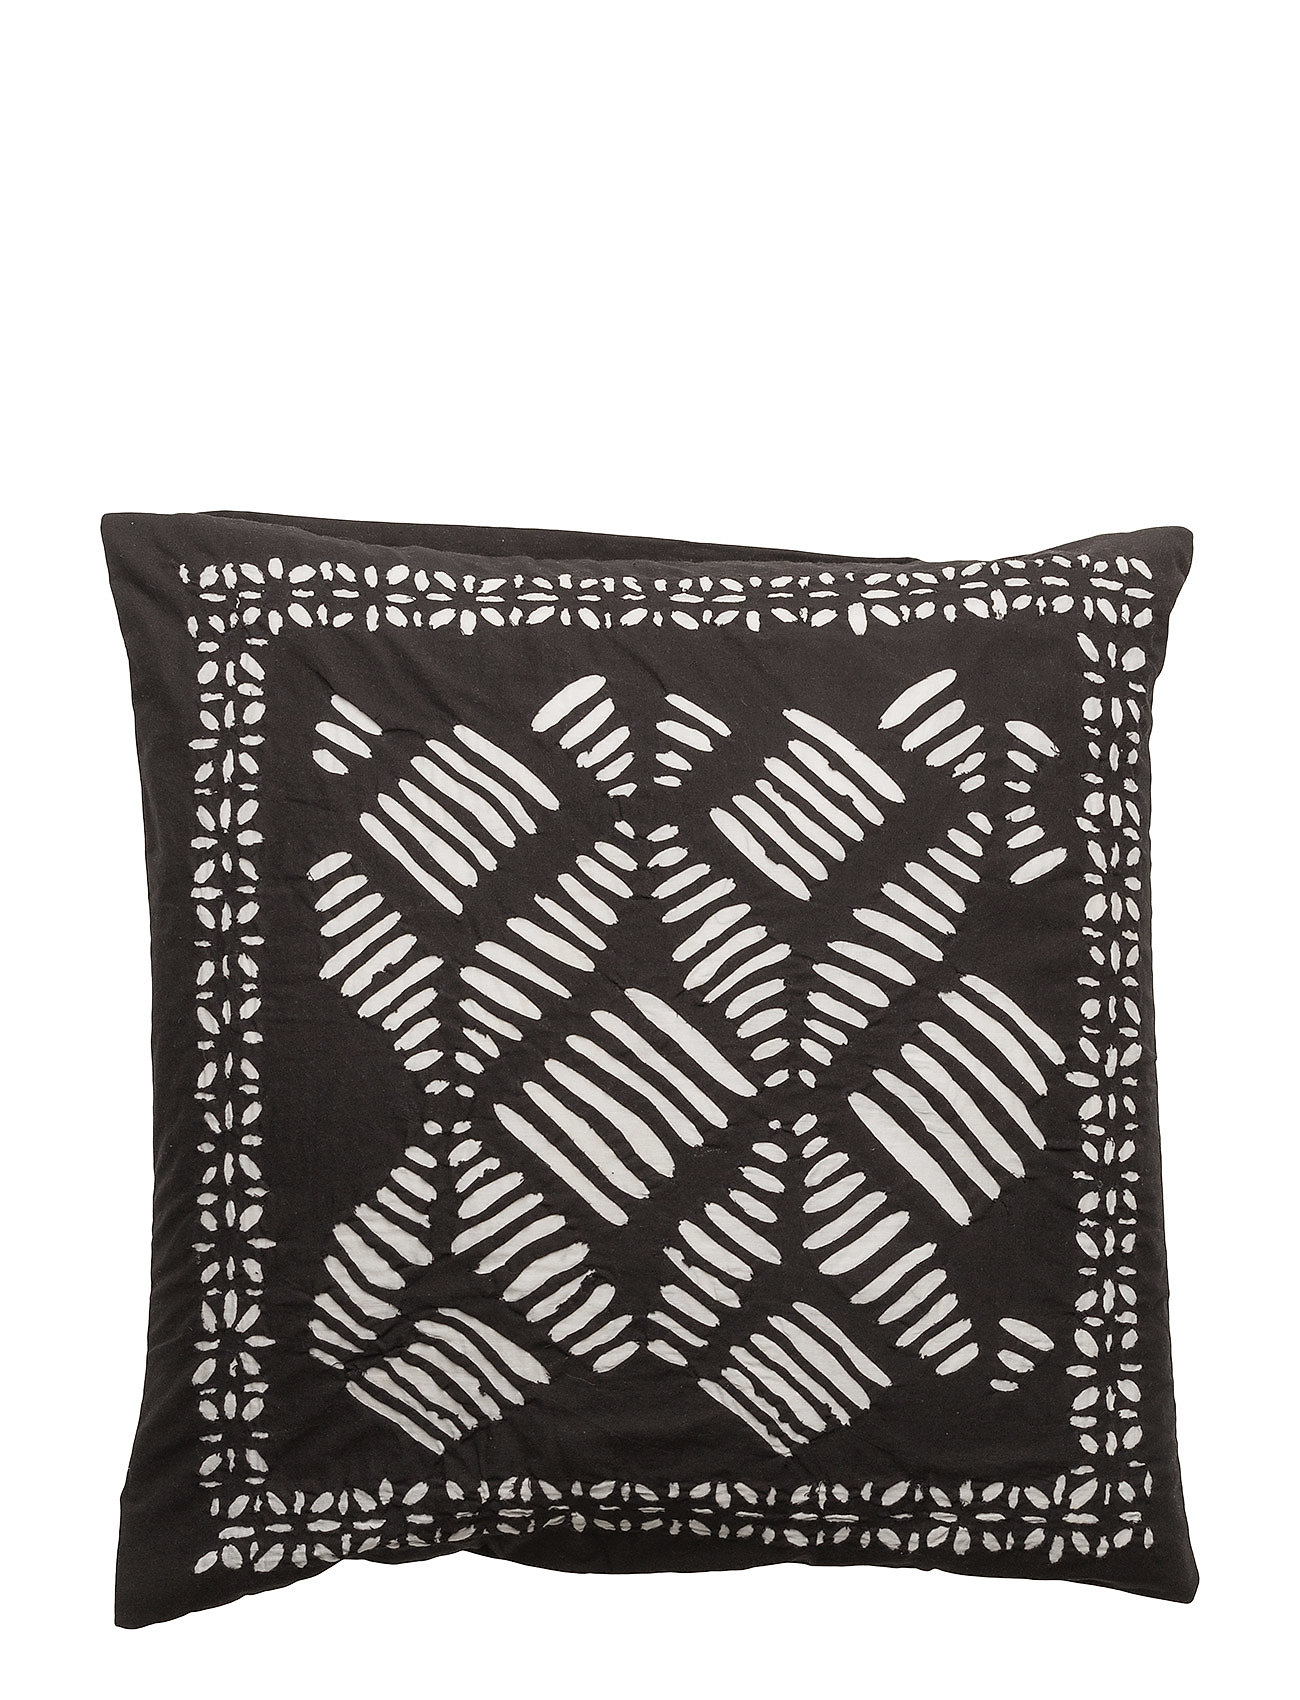 DAY Home Strictly Applique, Cushion Cover - BLACK/WHITE